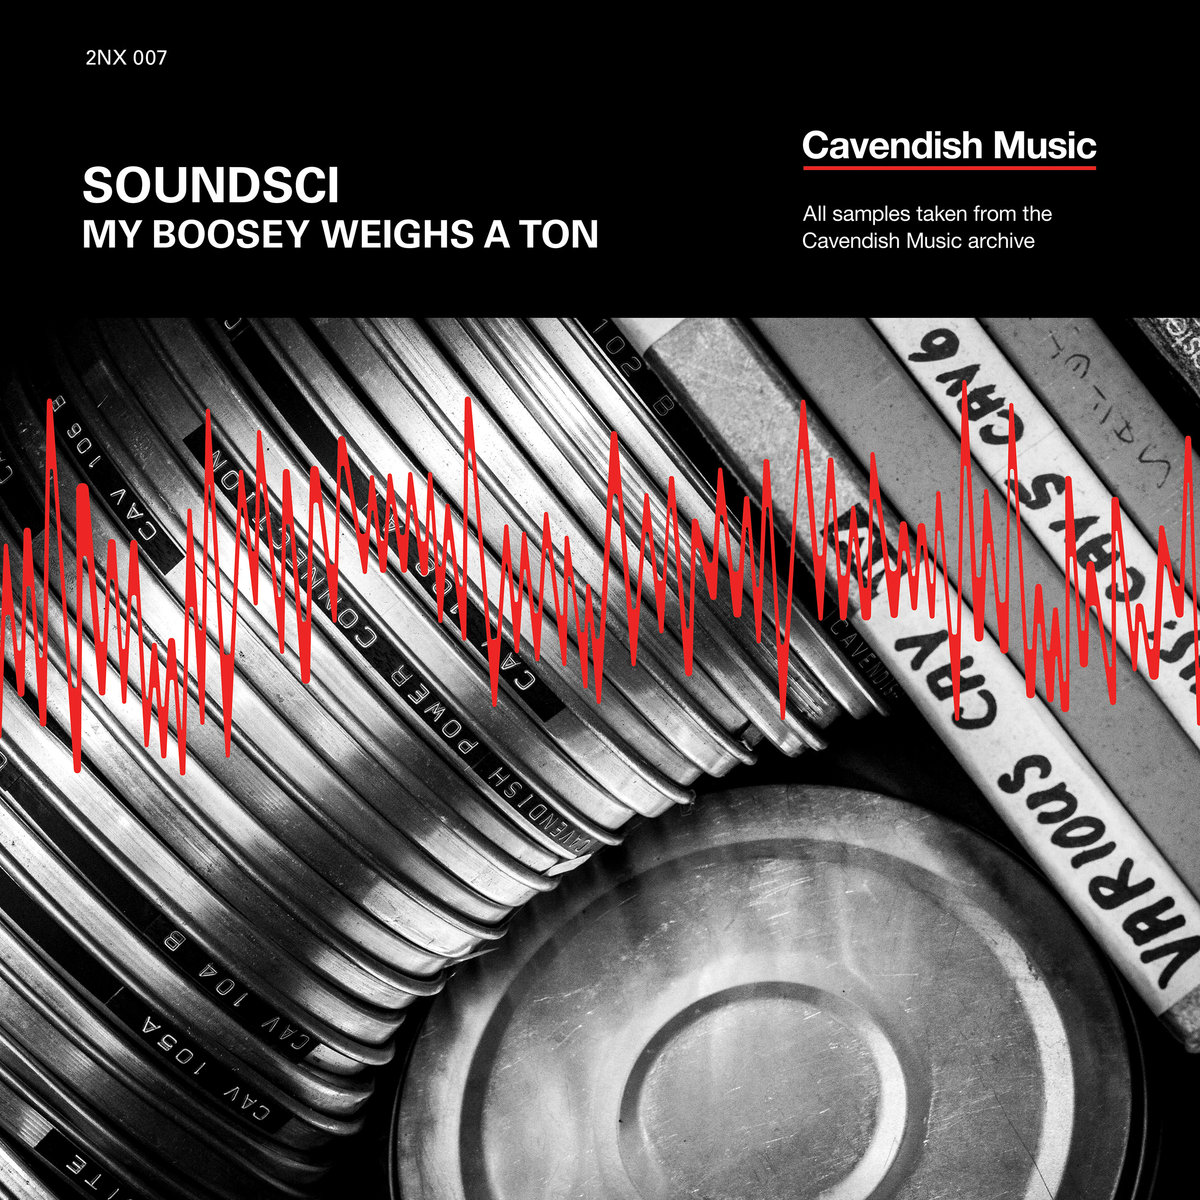 Album Stream: Soundsci – My Boosey Weighs A Ton (Library Music)